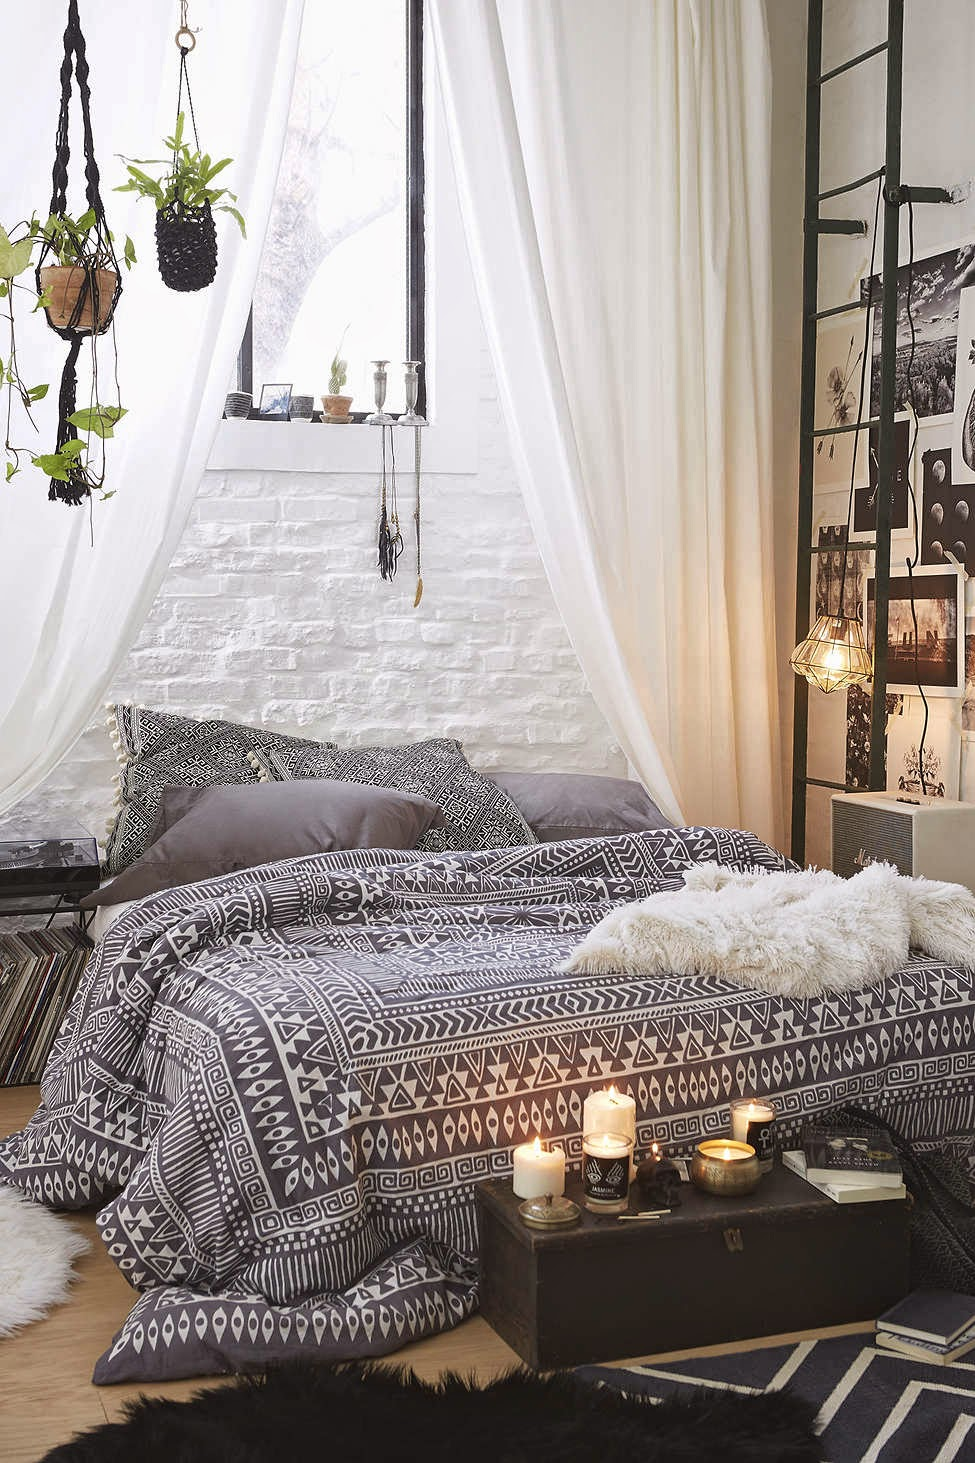 Bedroom inspiration - bedding and duvets | Neutral and light, dark and moody, colorful or filled with pattern... What is your favored style for the bedroom? Click through to read the full post on style inspiration for the bedroom.